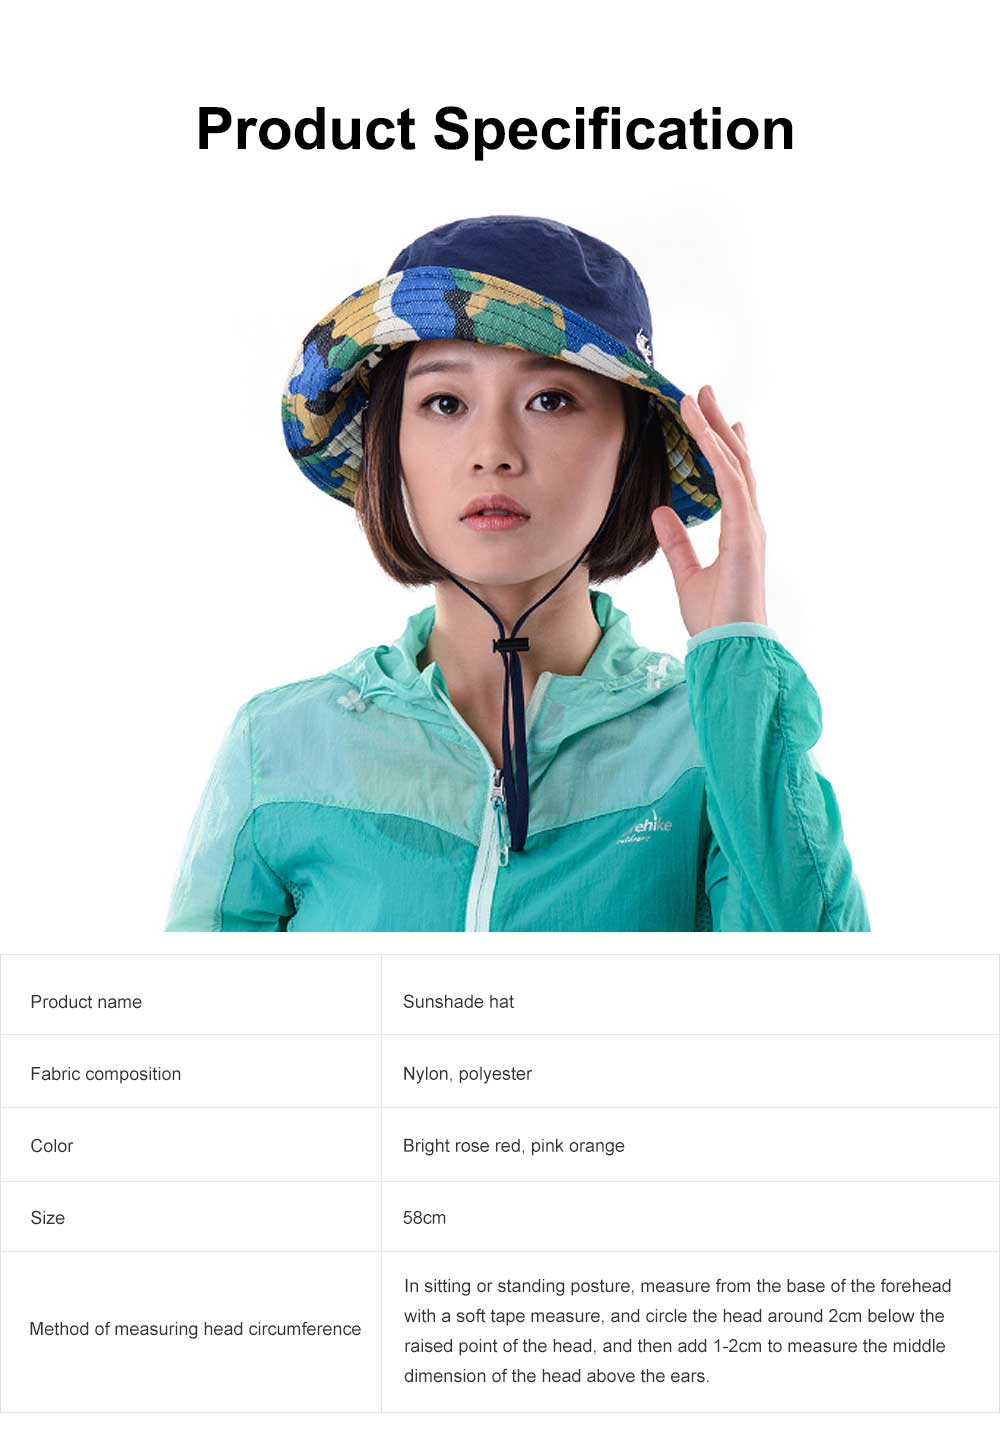 Sunshade Hat for Outdoors, Fishing, Hiking UV Protection, Breathable Fisherman Hat 2019 Women Summer Hat 6